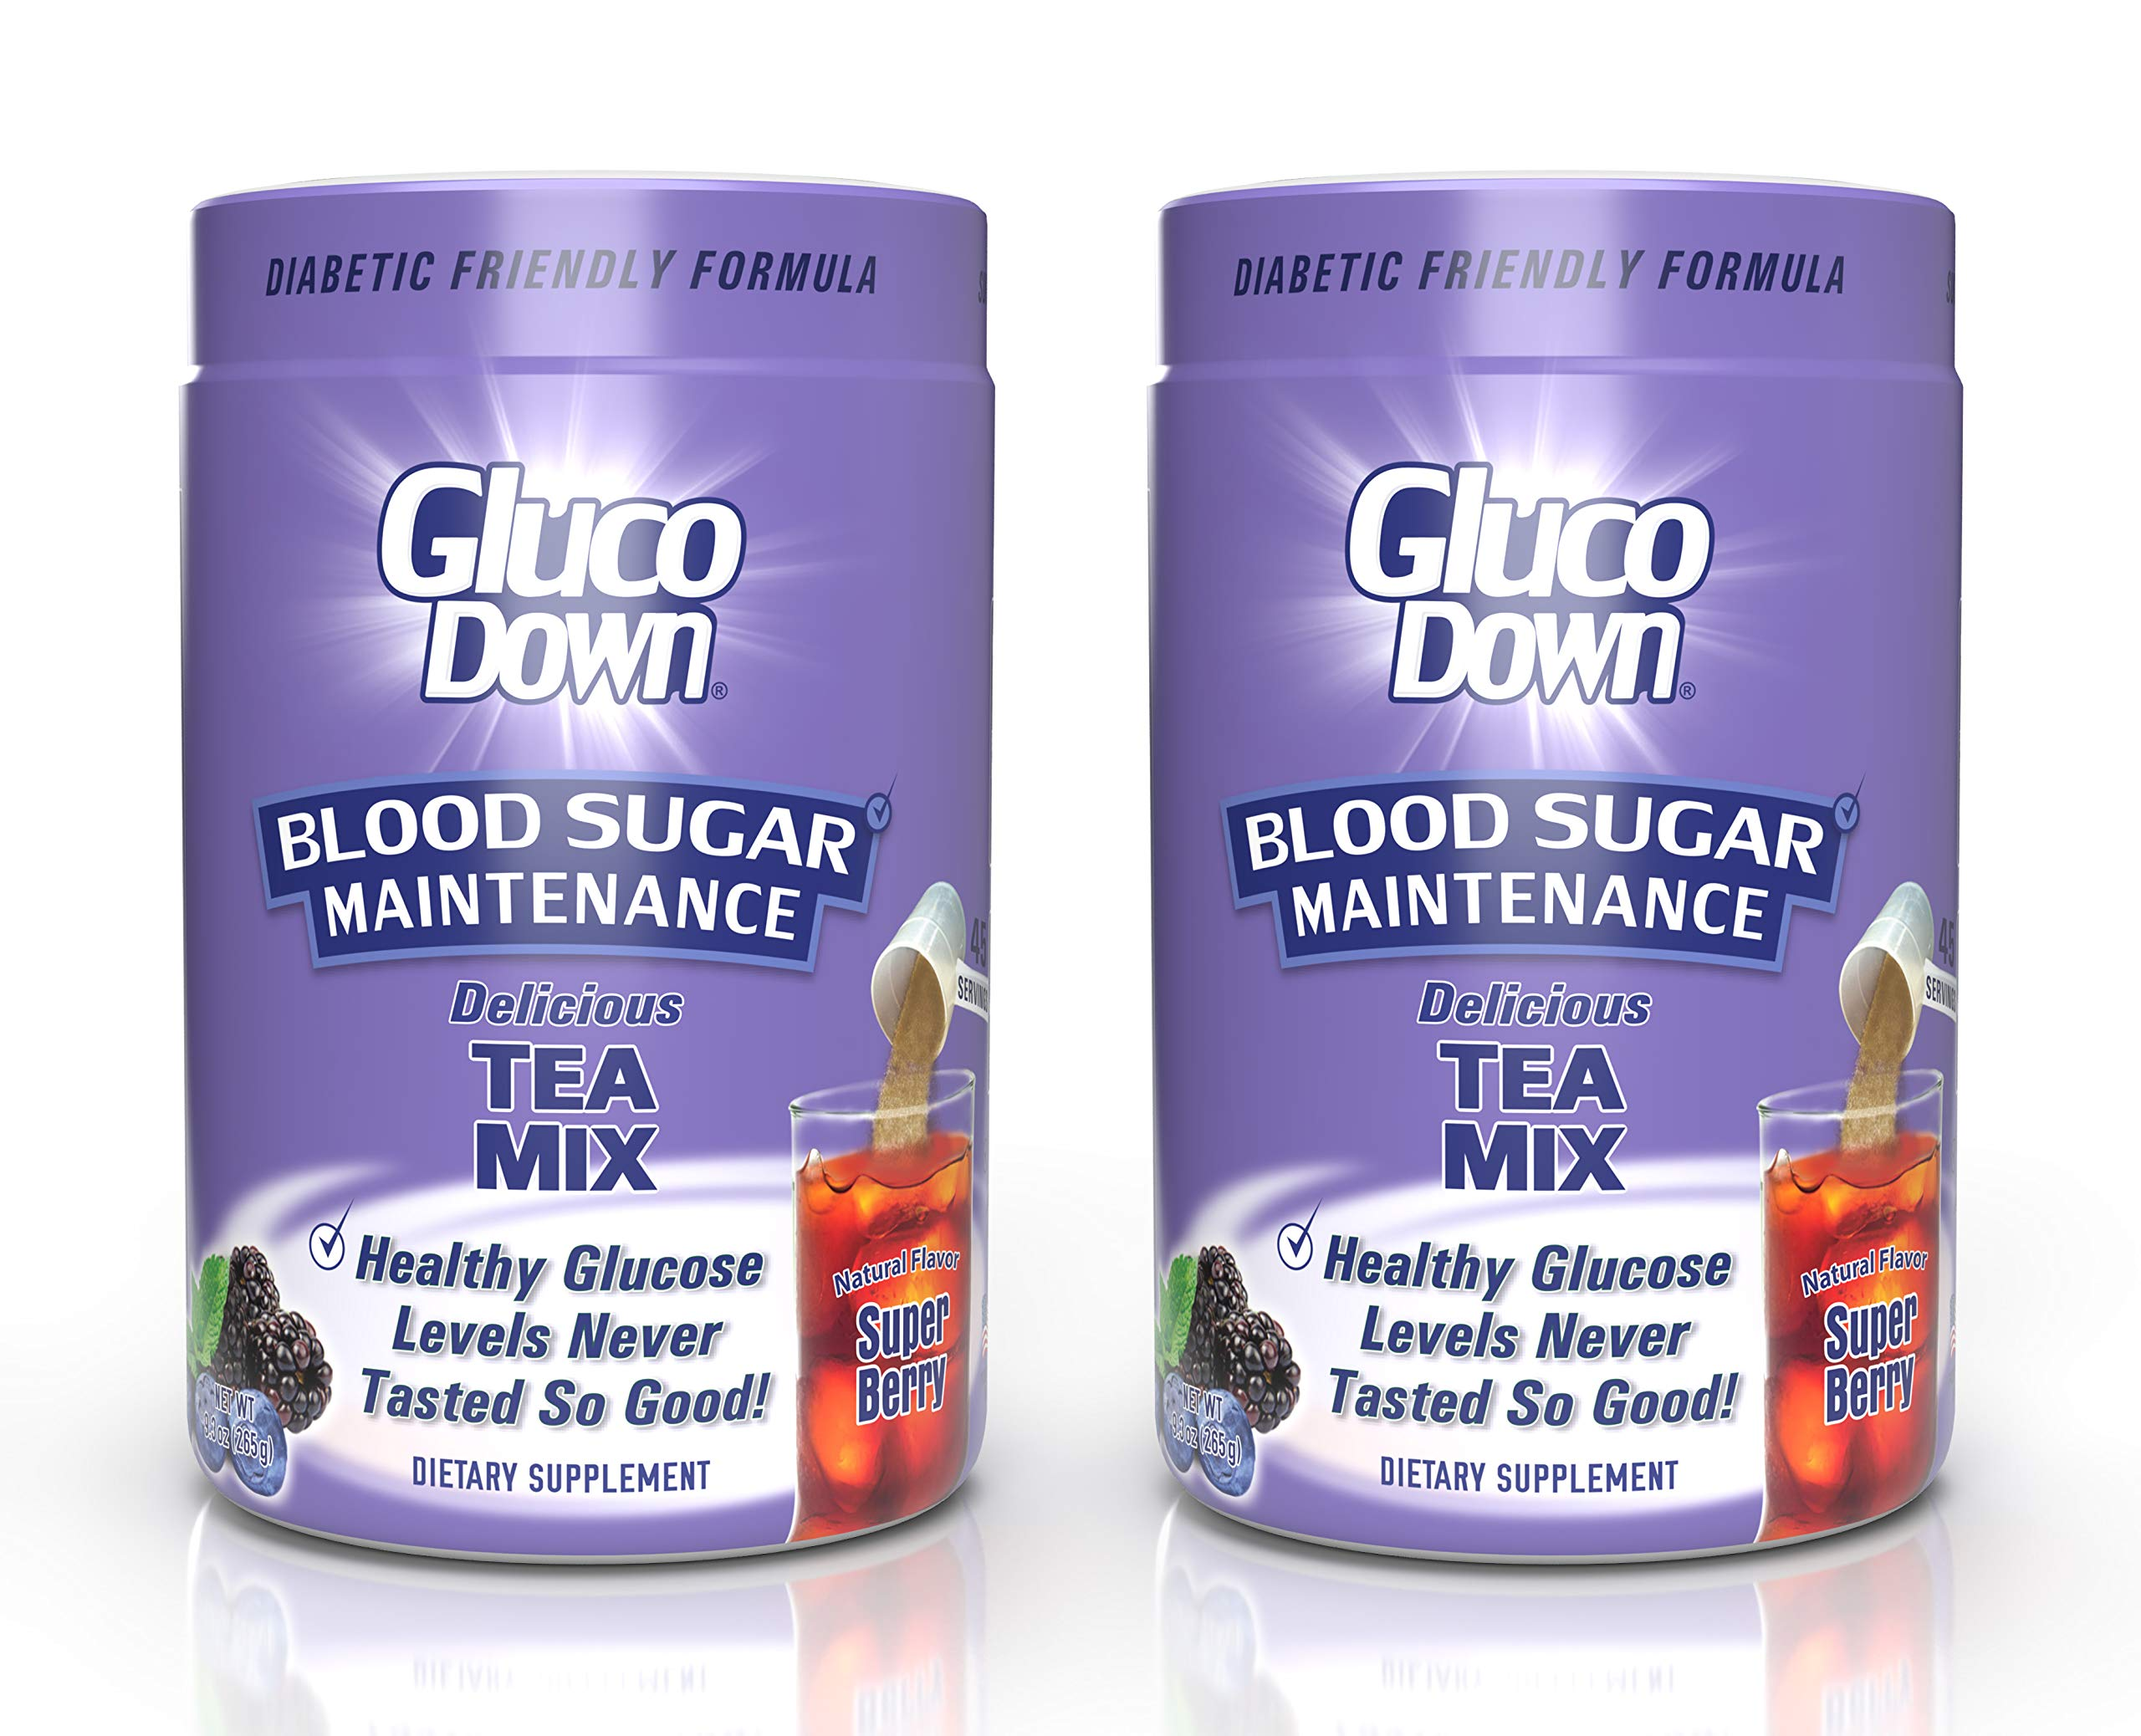 2-Pack, GlucoDown Diabetic Friendly Beverage, Maintain Healthy Blood Sugar, Delicious Super Berry Tea (Two 45-Serving Containers)